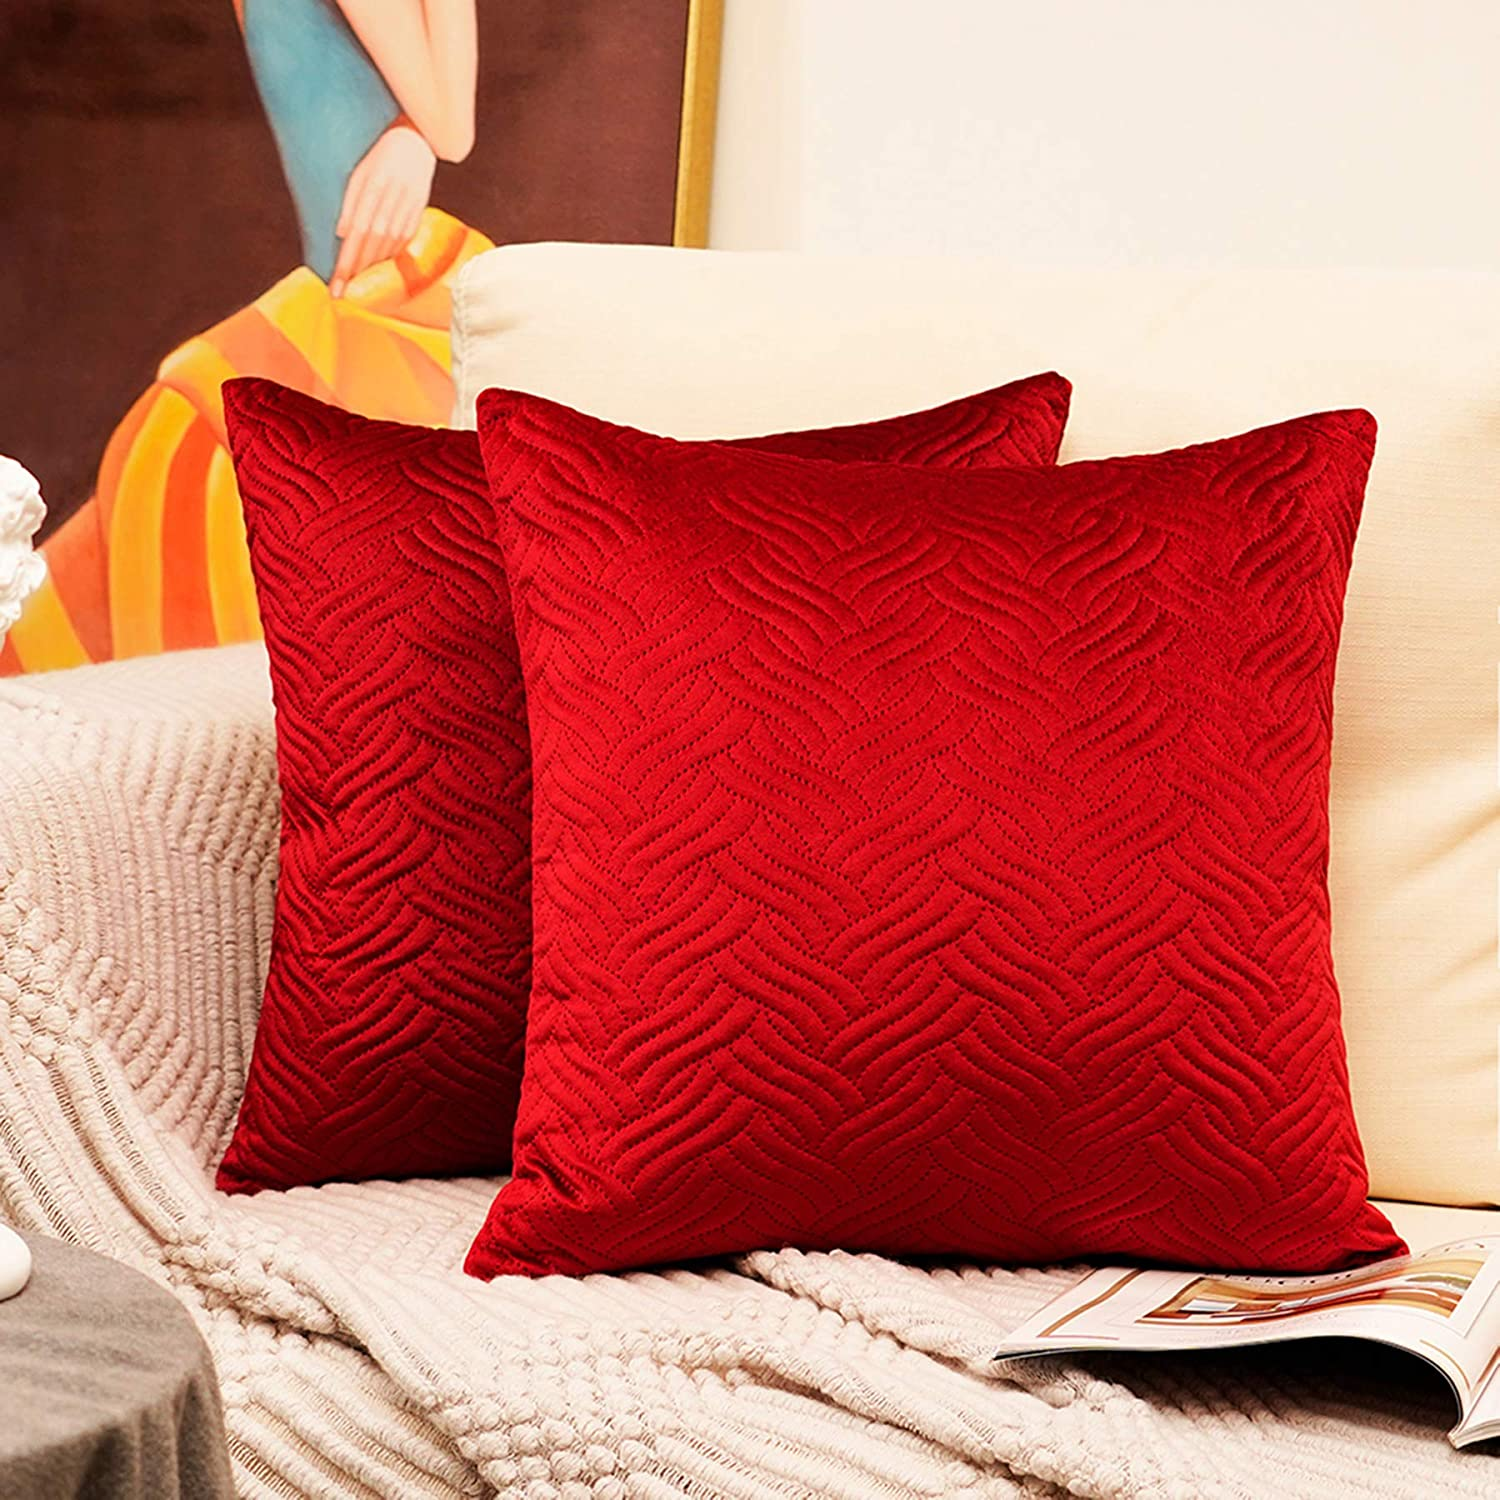 HomiinThrowPillowCovers 18 x 18 inch, Fall Pillow Covers Set of 2, Velvet Elegant Square Decorative Throw Pillow Covers, Modern Fashion Style Pillow Cases of Home Decor (Burgundy)